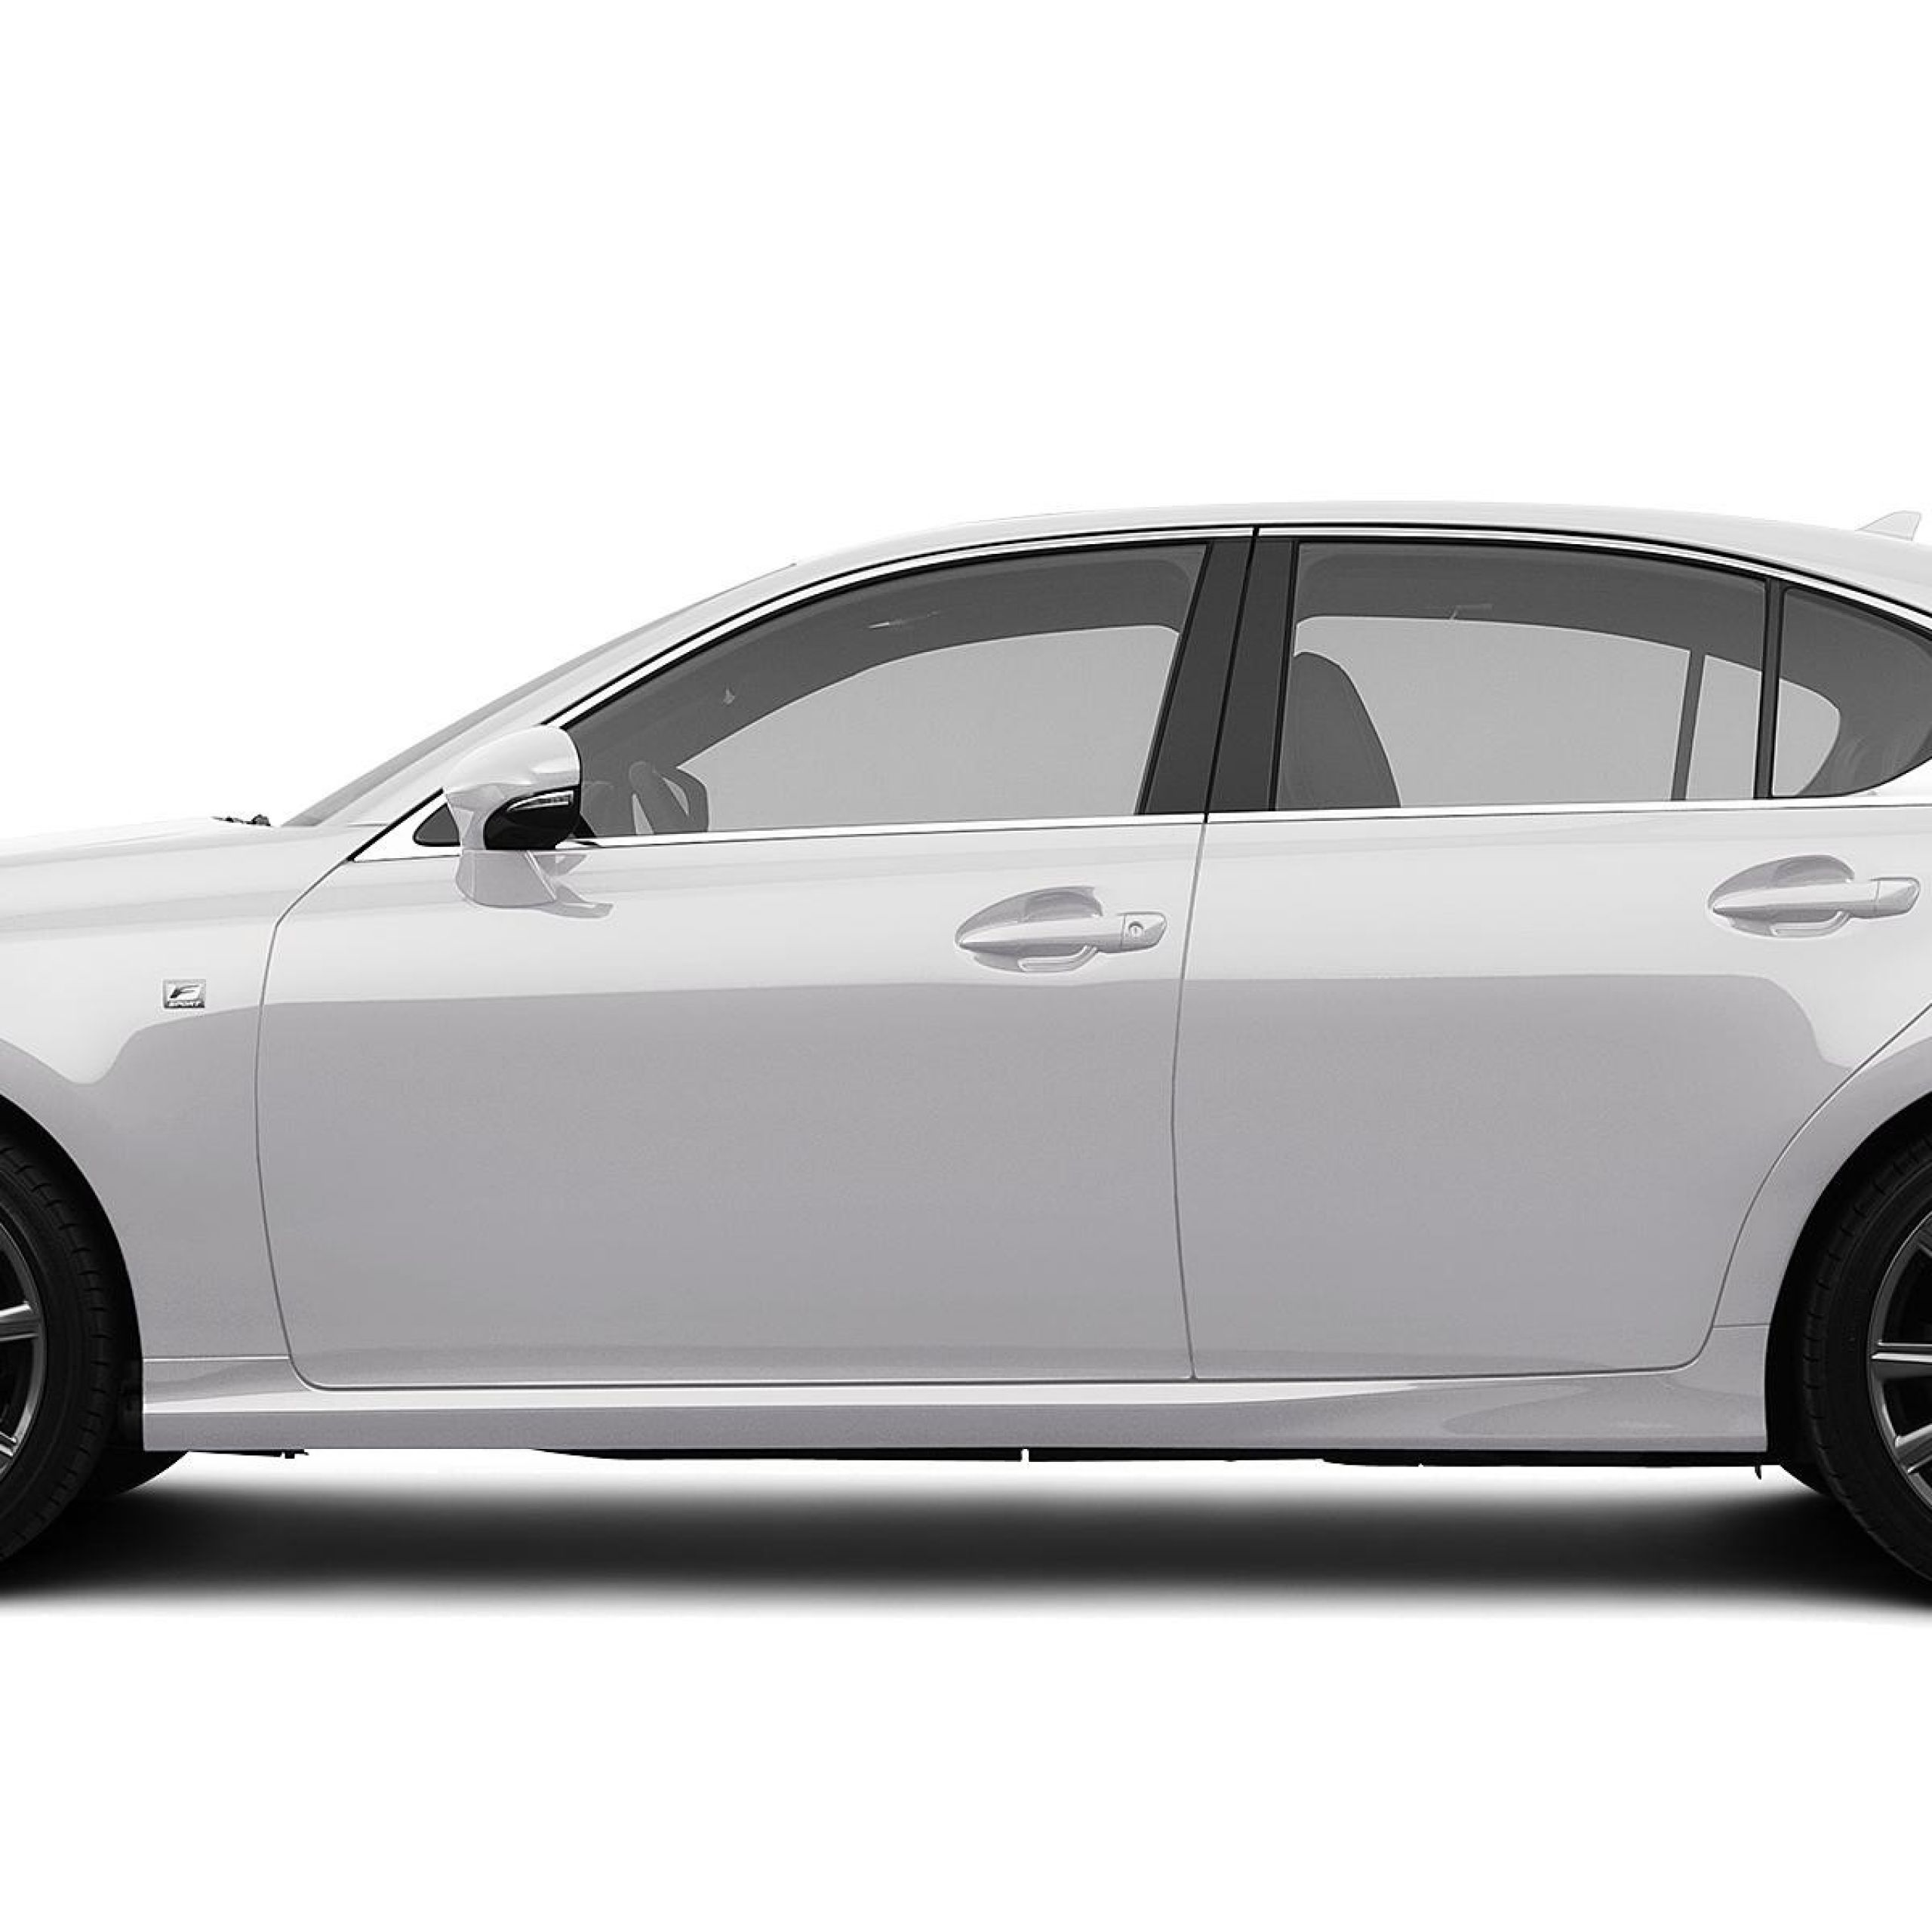 Lexus Gs 350 for Sale Awesome 2013 Lexus Gs 350 Awd 4dr Sedan Research Groovecar